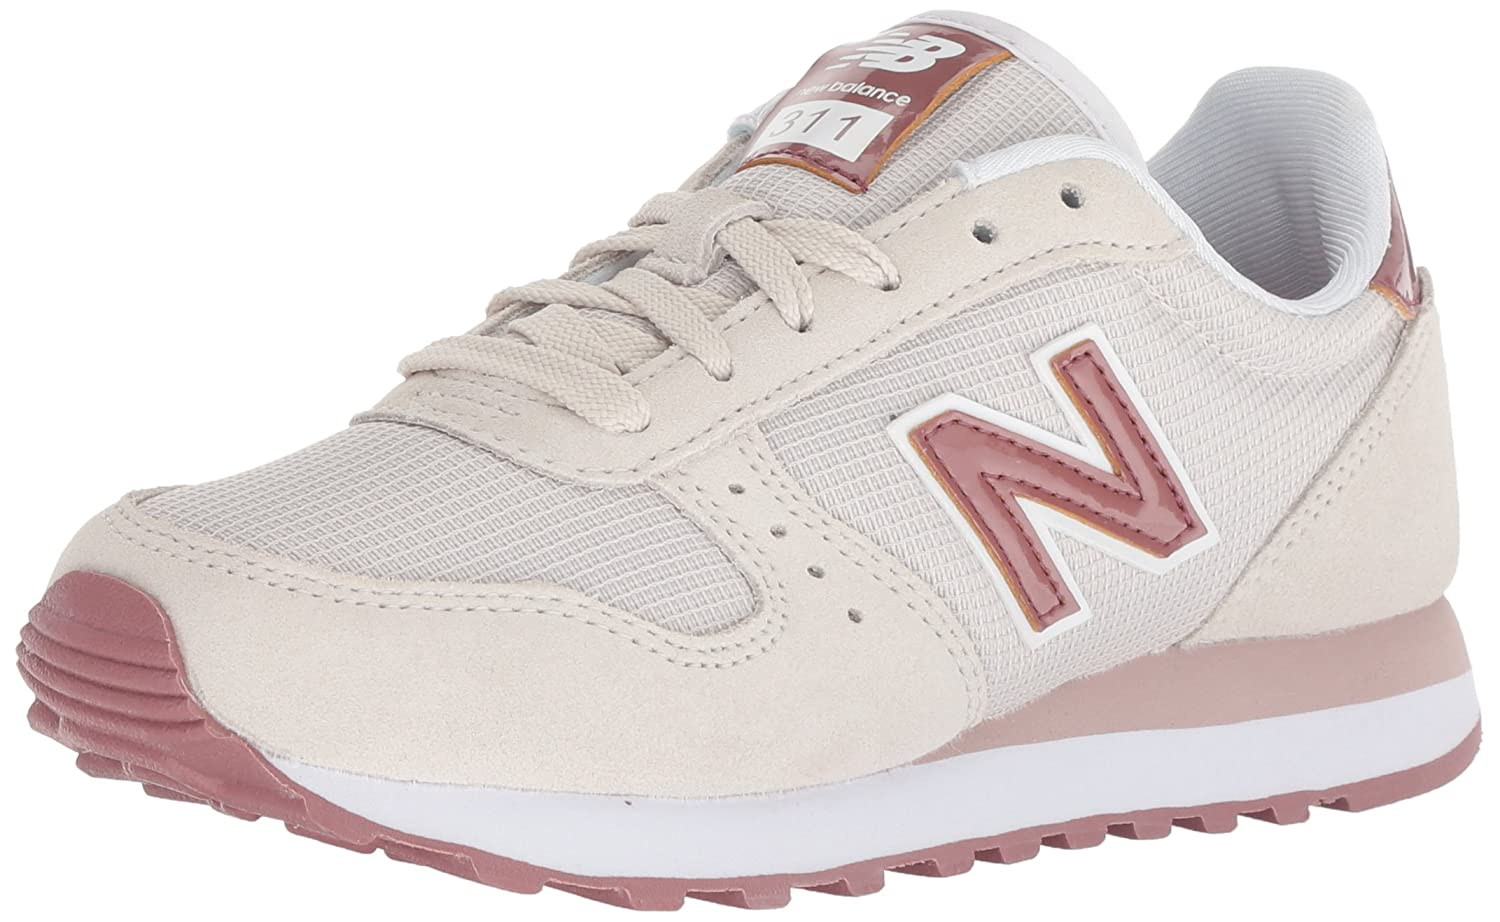 New Balance Women's 311v1 Sneaker B075R6YZTD 5.5 B(M) US|Moonbeam